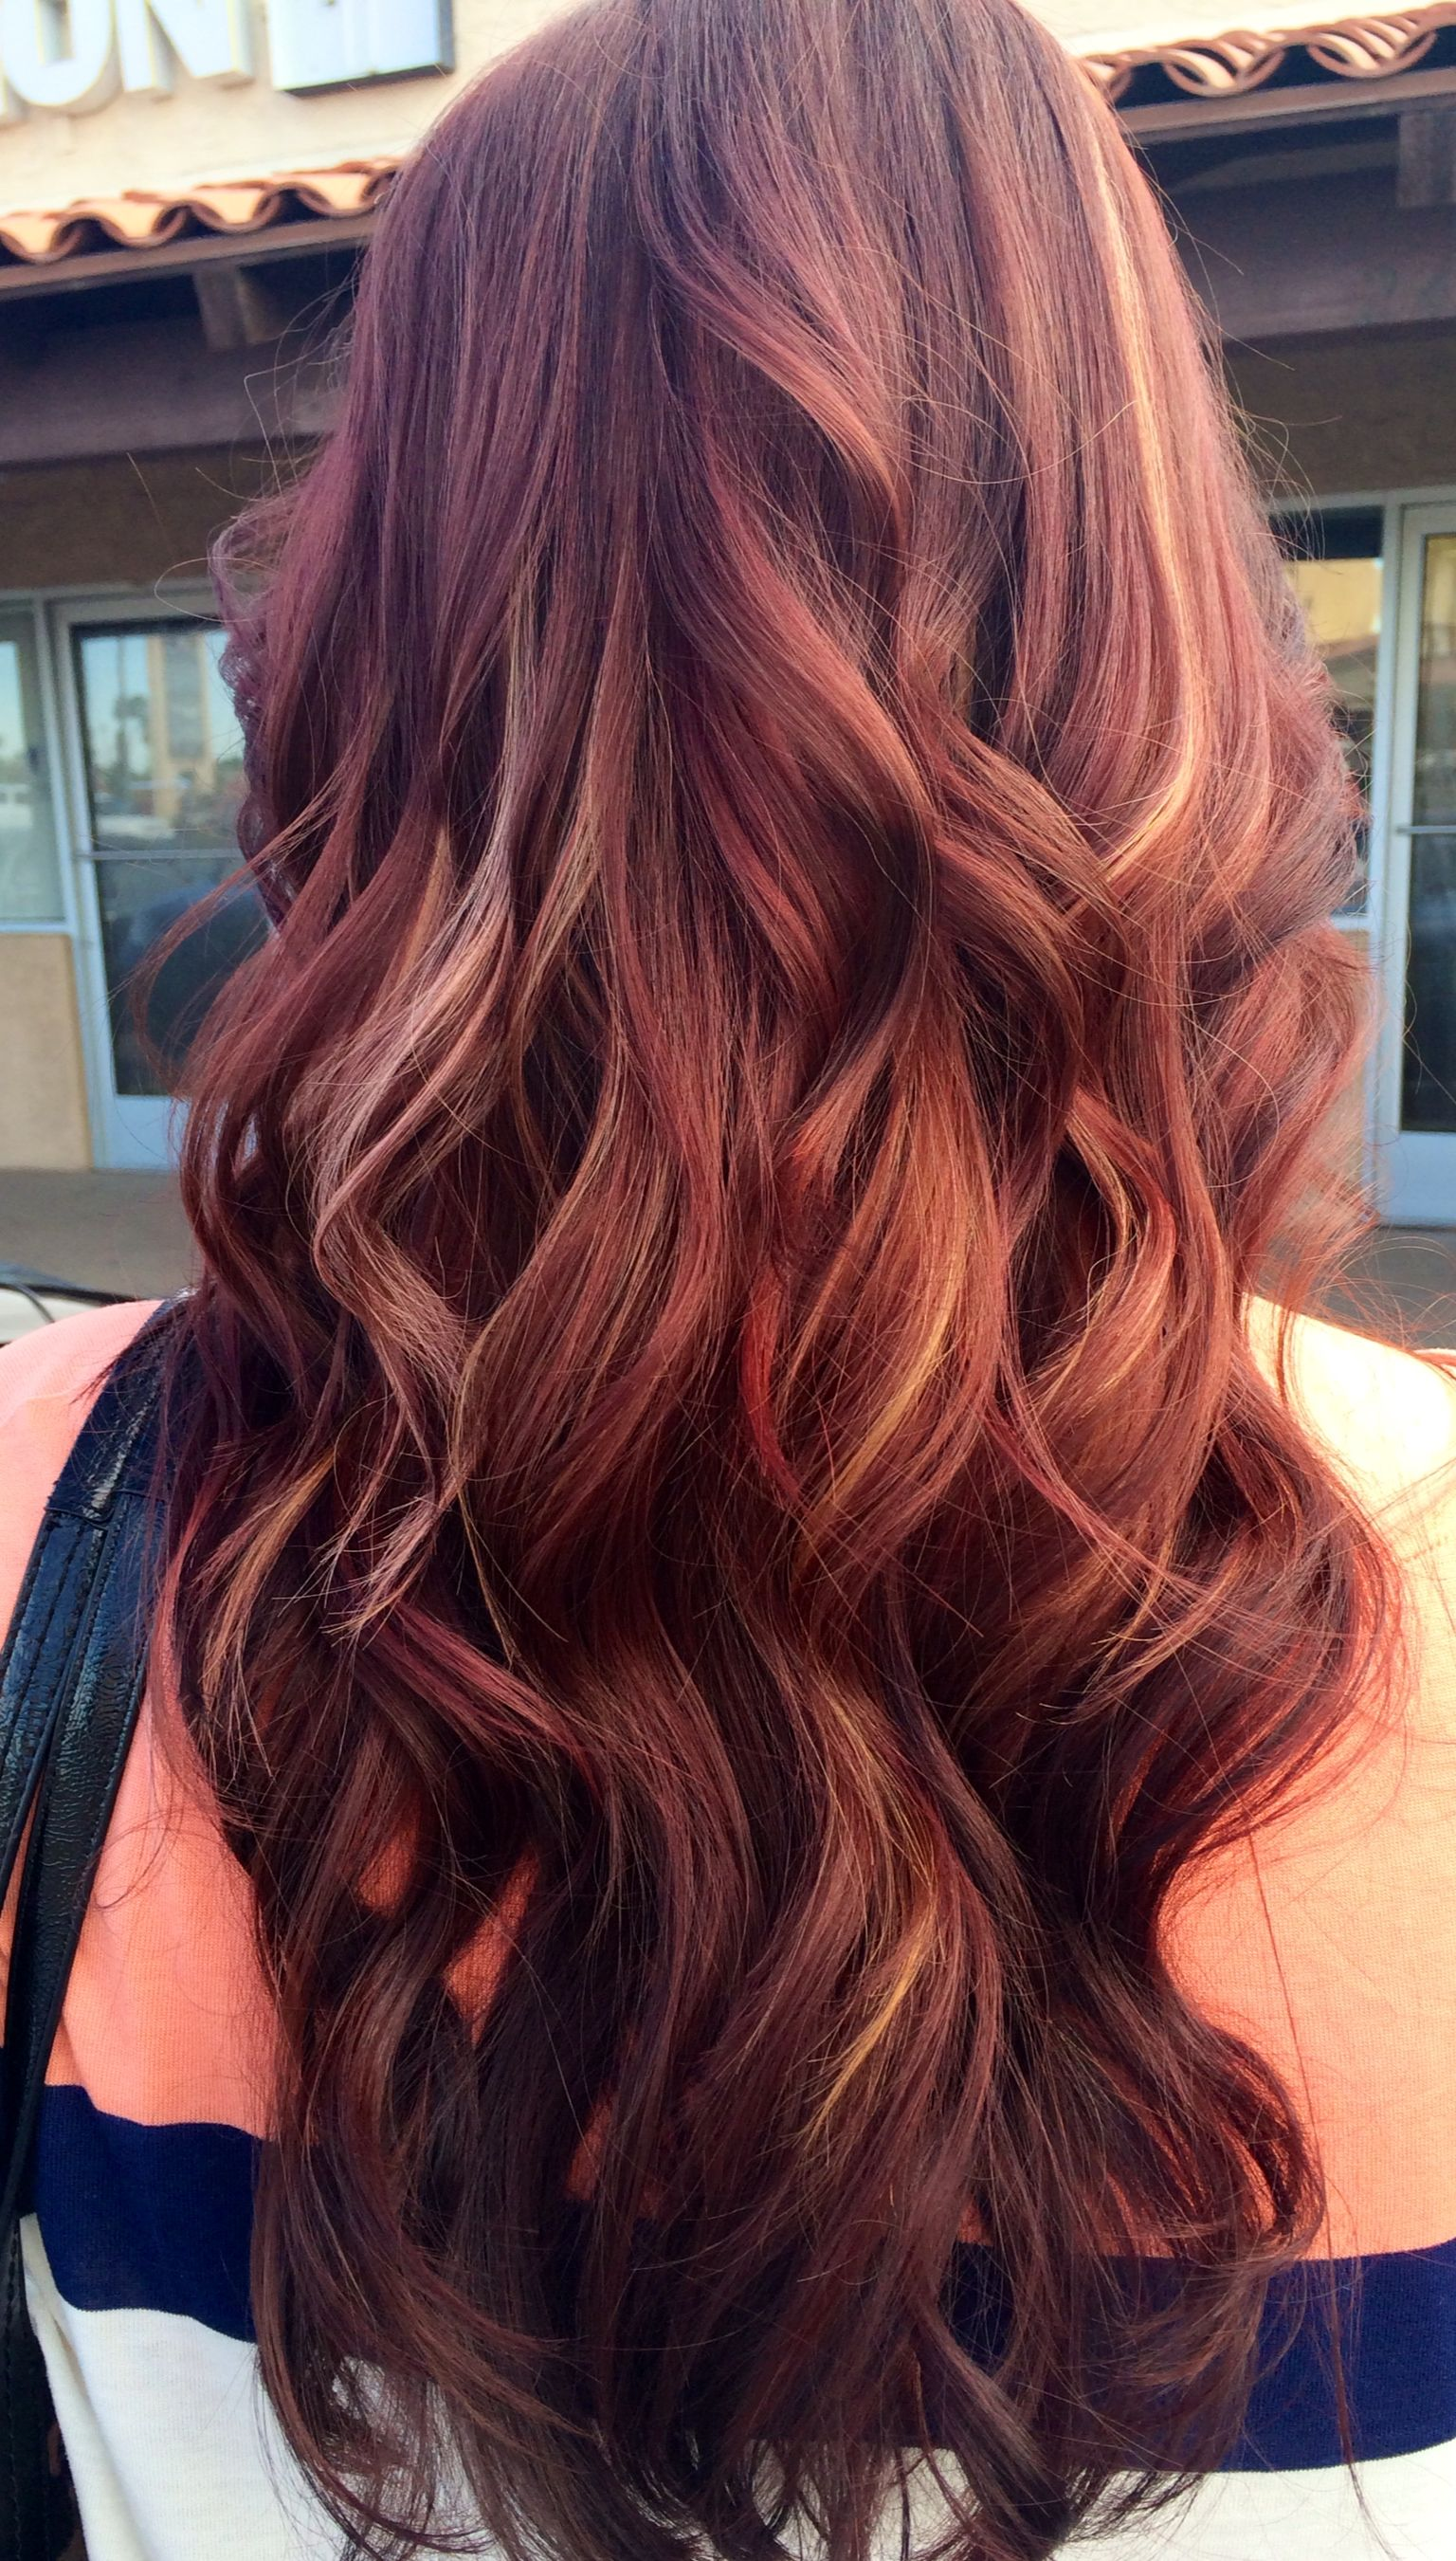 Red With Blond Peekaboo Highlights Mahogany Hair Hair